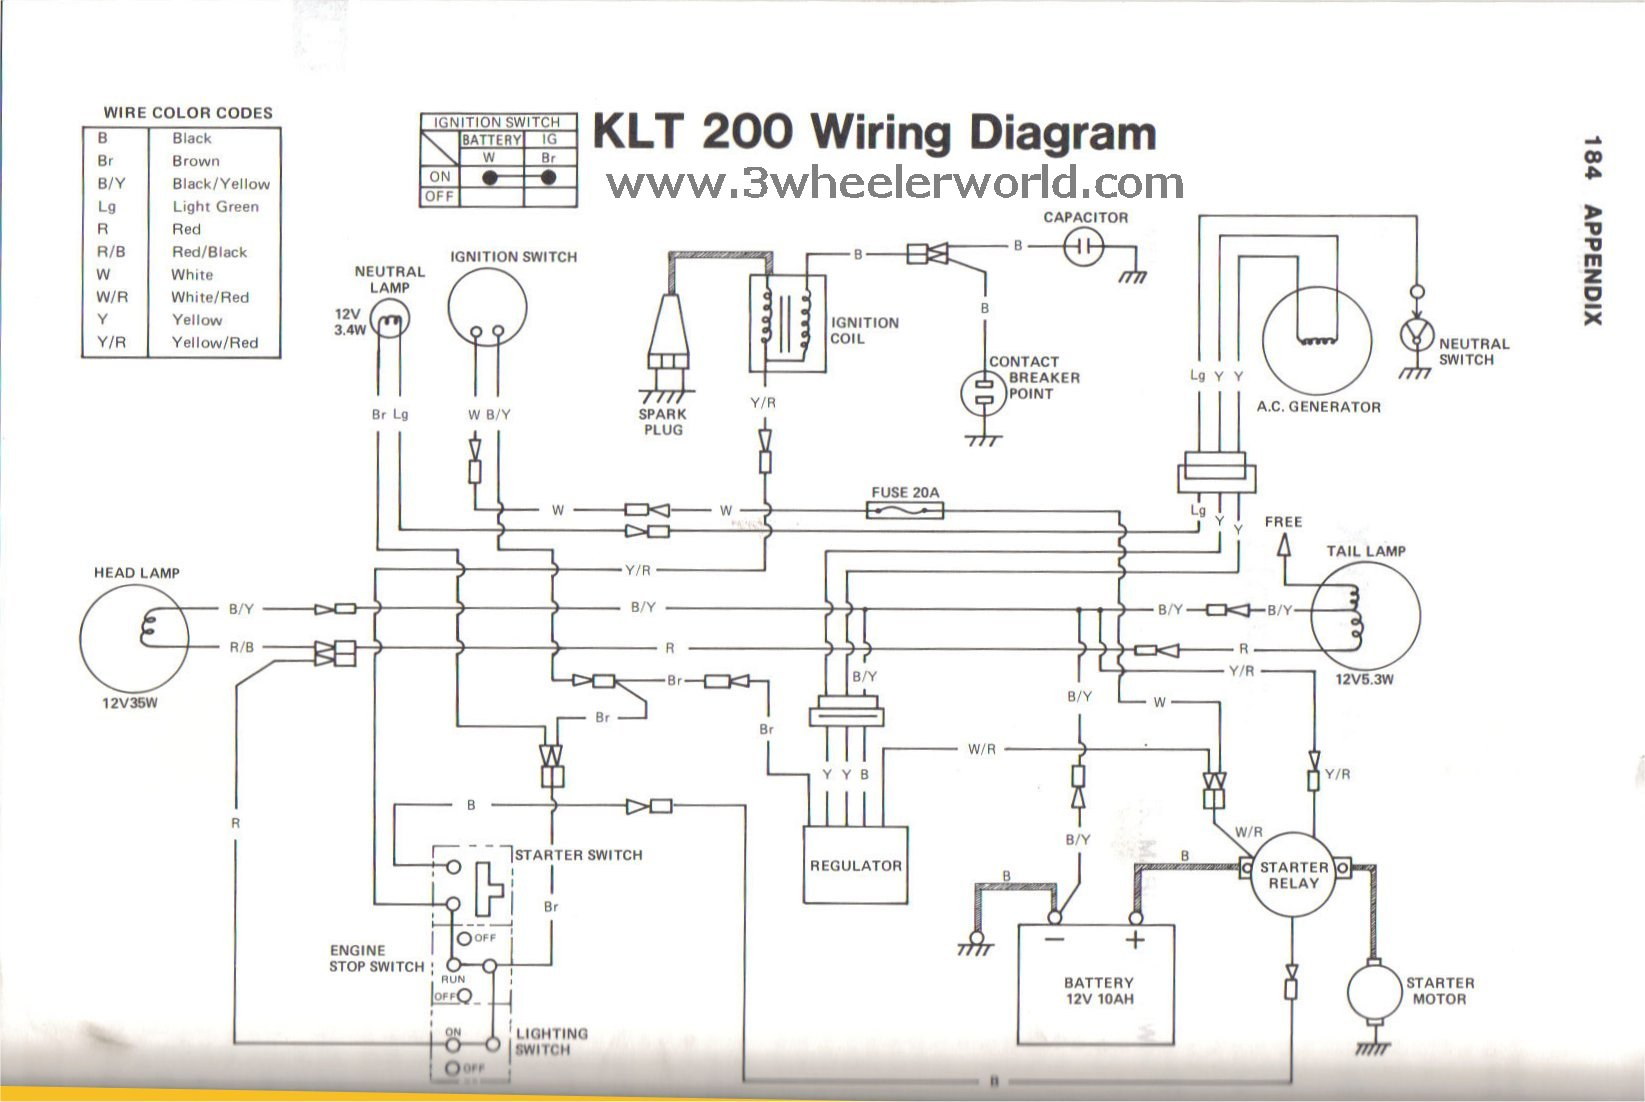 hight resolution of 3 wheeler world tech help kawasaki wiring diagramsklt200 early models